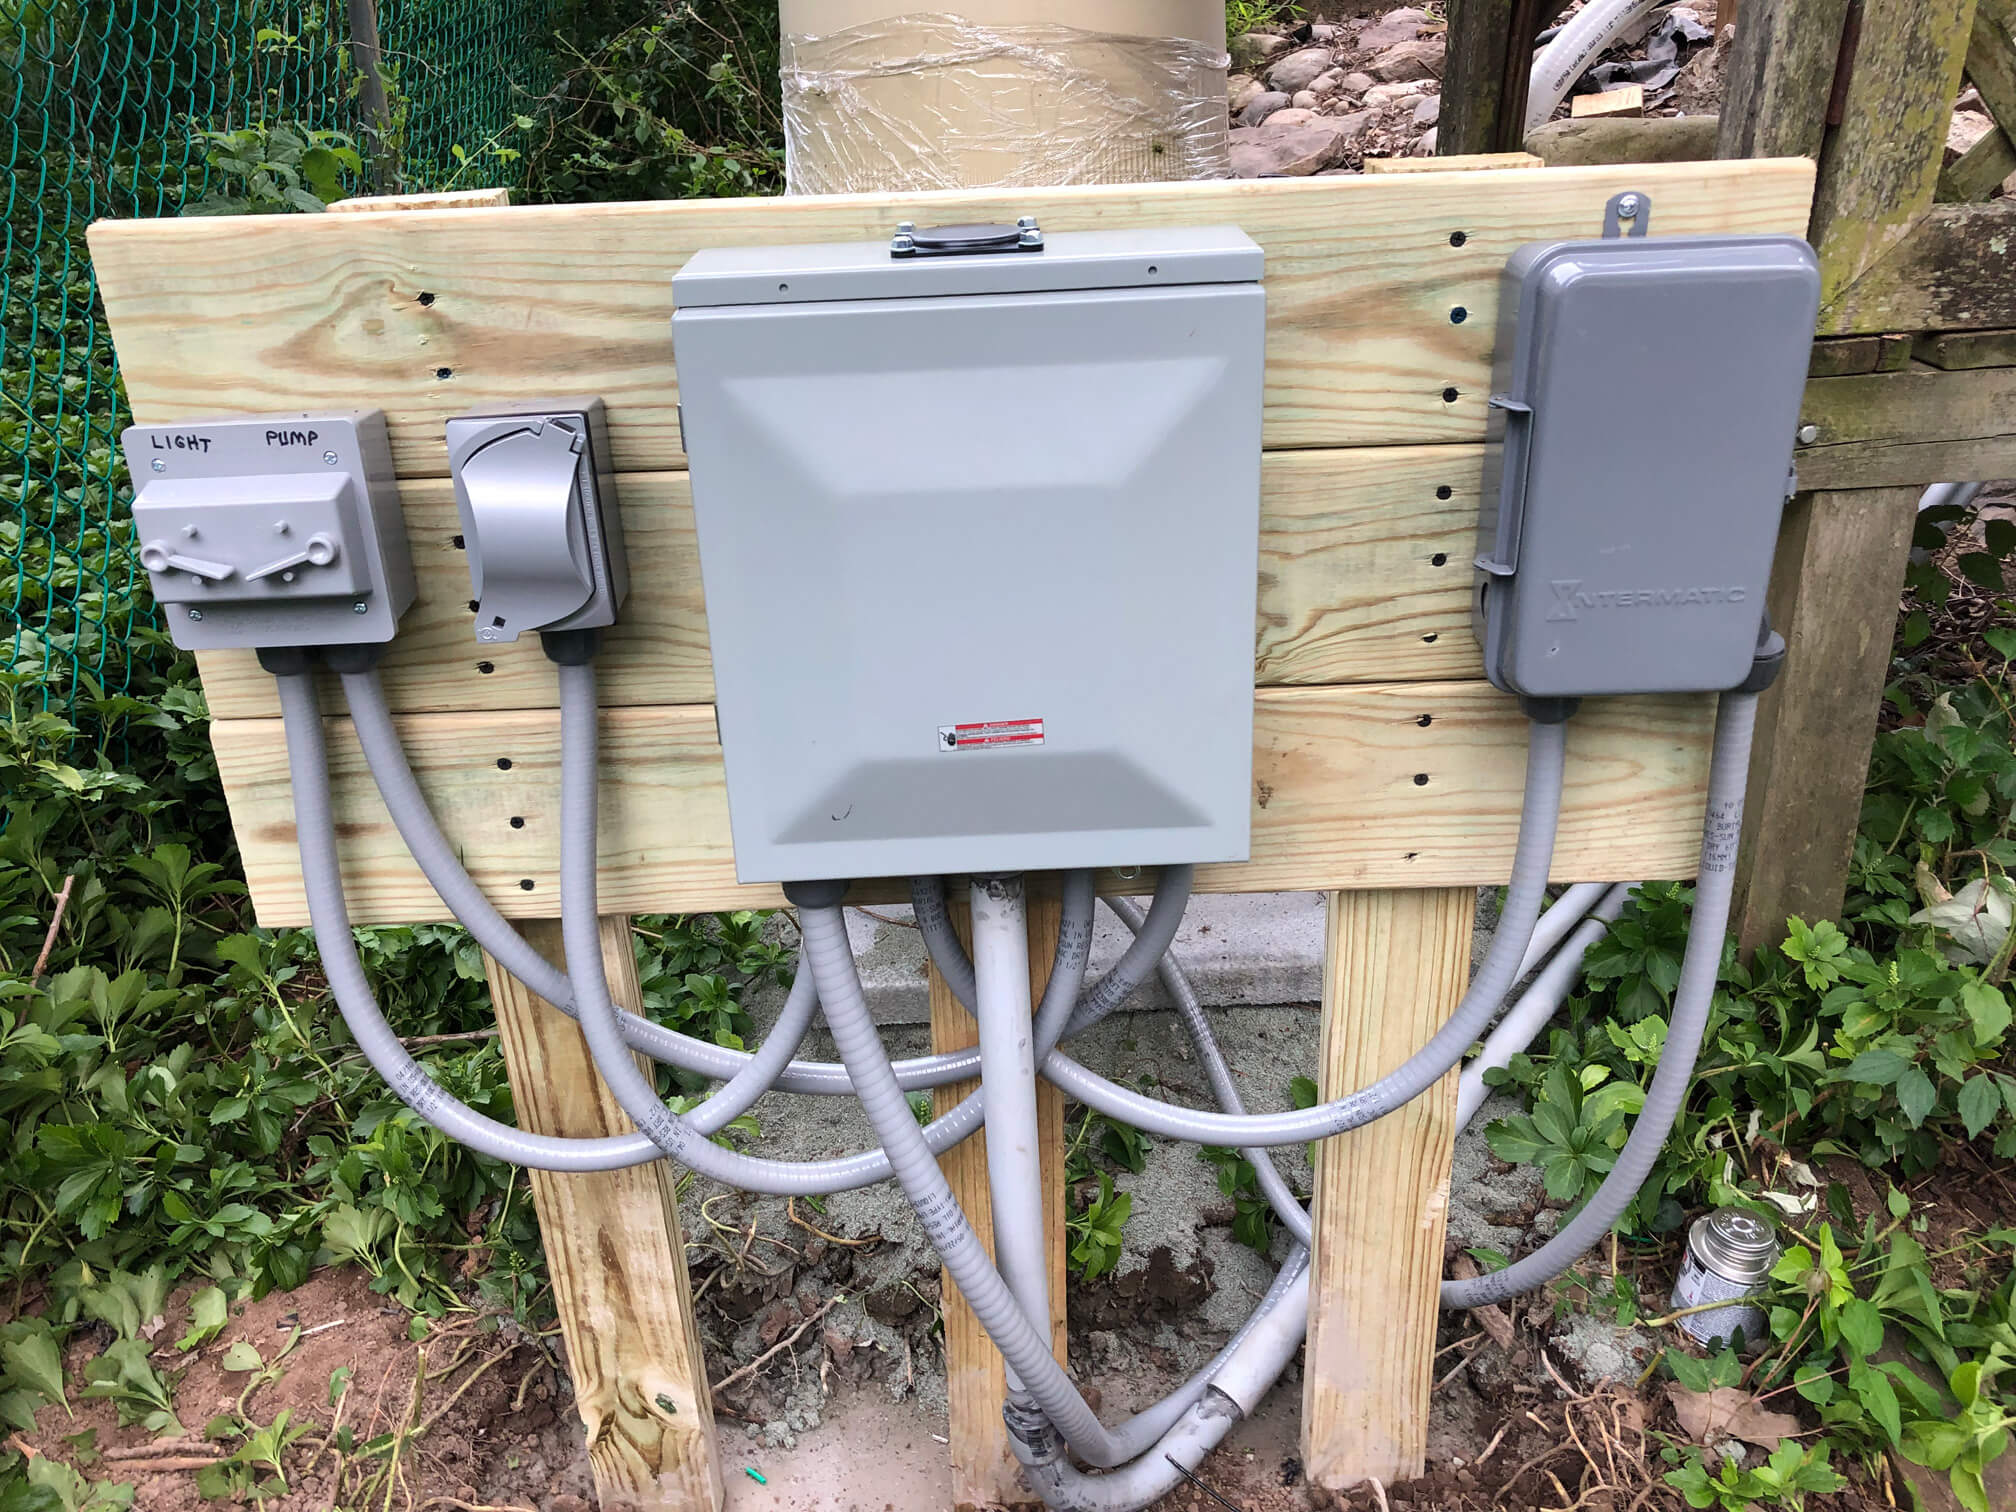 Pool-pumps-heaters-lights-and-timer-panl-installation